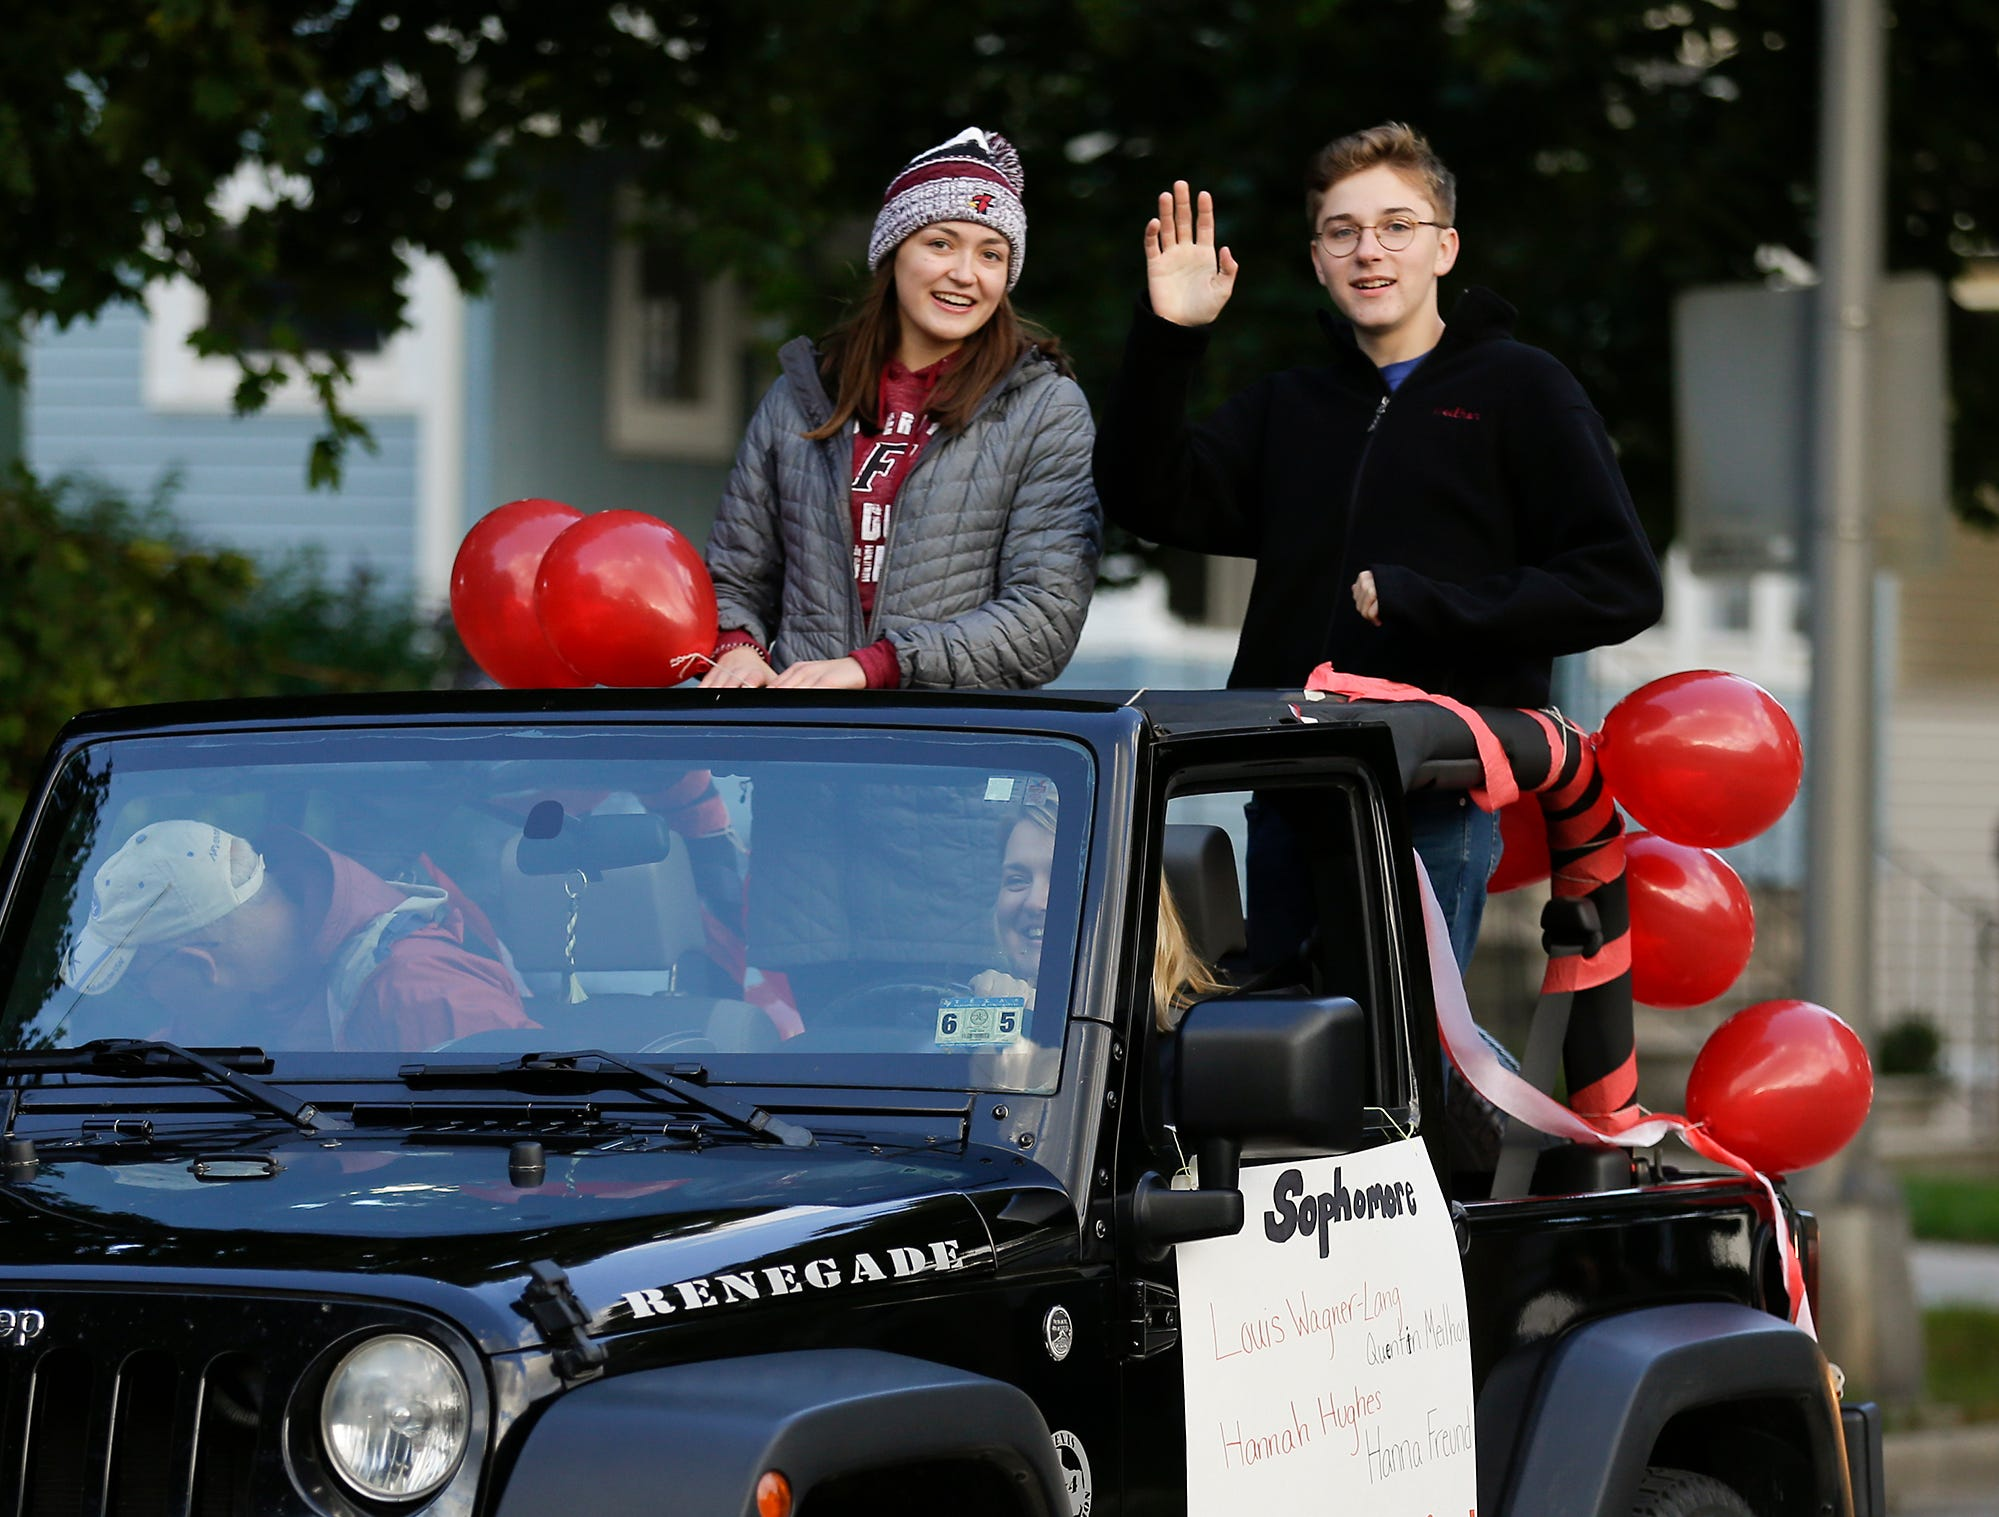 Fond du Lac High School sophomore prom court members Hanna Freund and Quentin Meilhon ride in the Fond du Lac High School football homecoming parade Friday, Sept. 28, 2018, which went down portions of Martin Avenue and Ninth Street in Fond du Lac, Wisconsin.